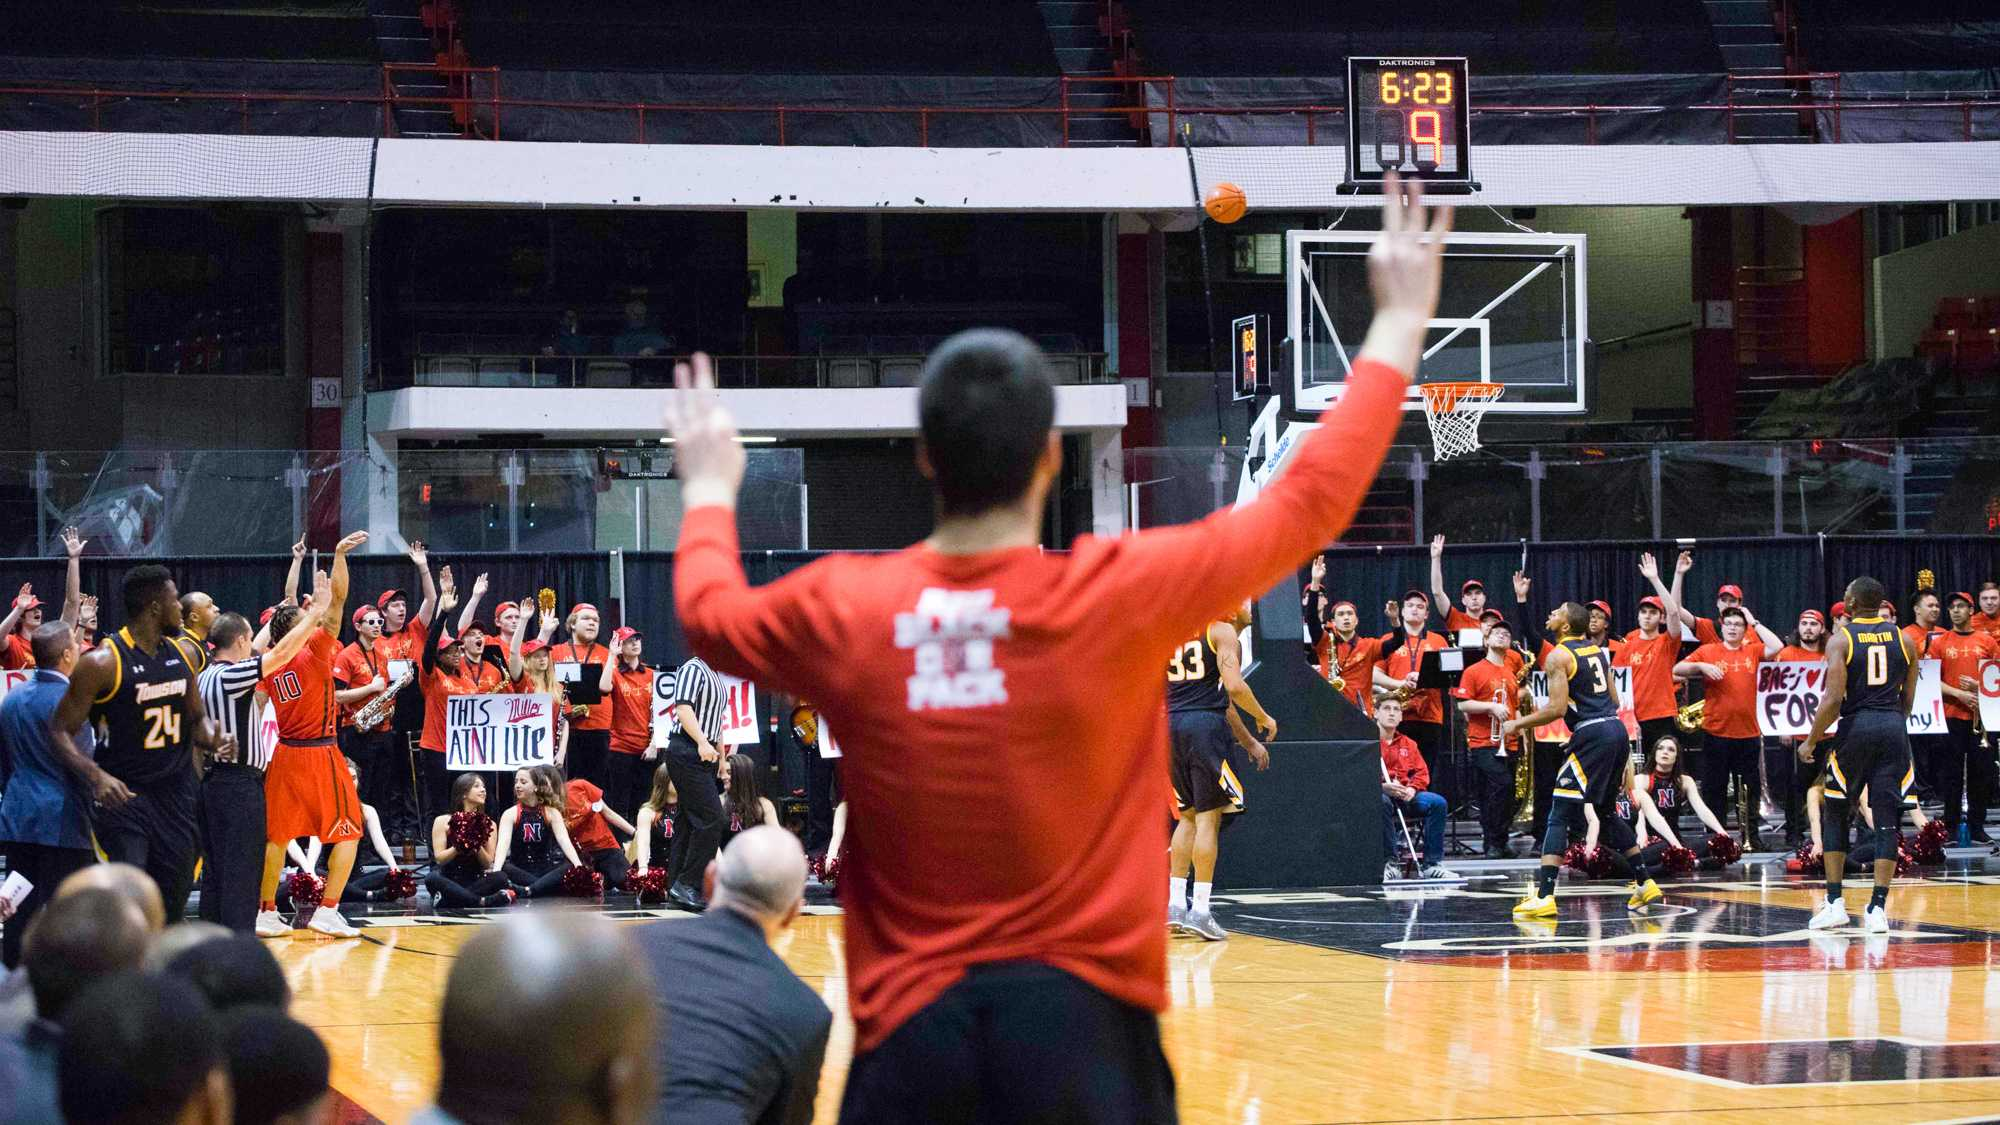 The+crowd+cheers+as+senior+T.J.+Williams+%2810%29+shoots+a+3-pointer+during+the+first+half.